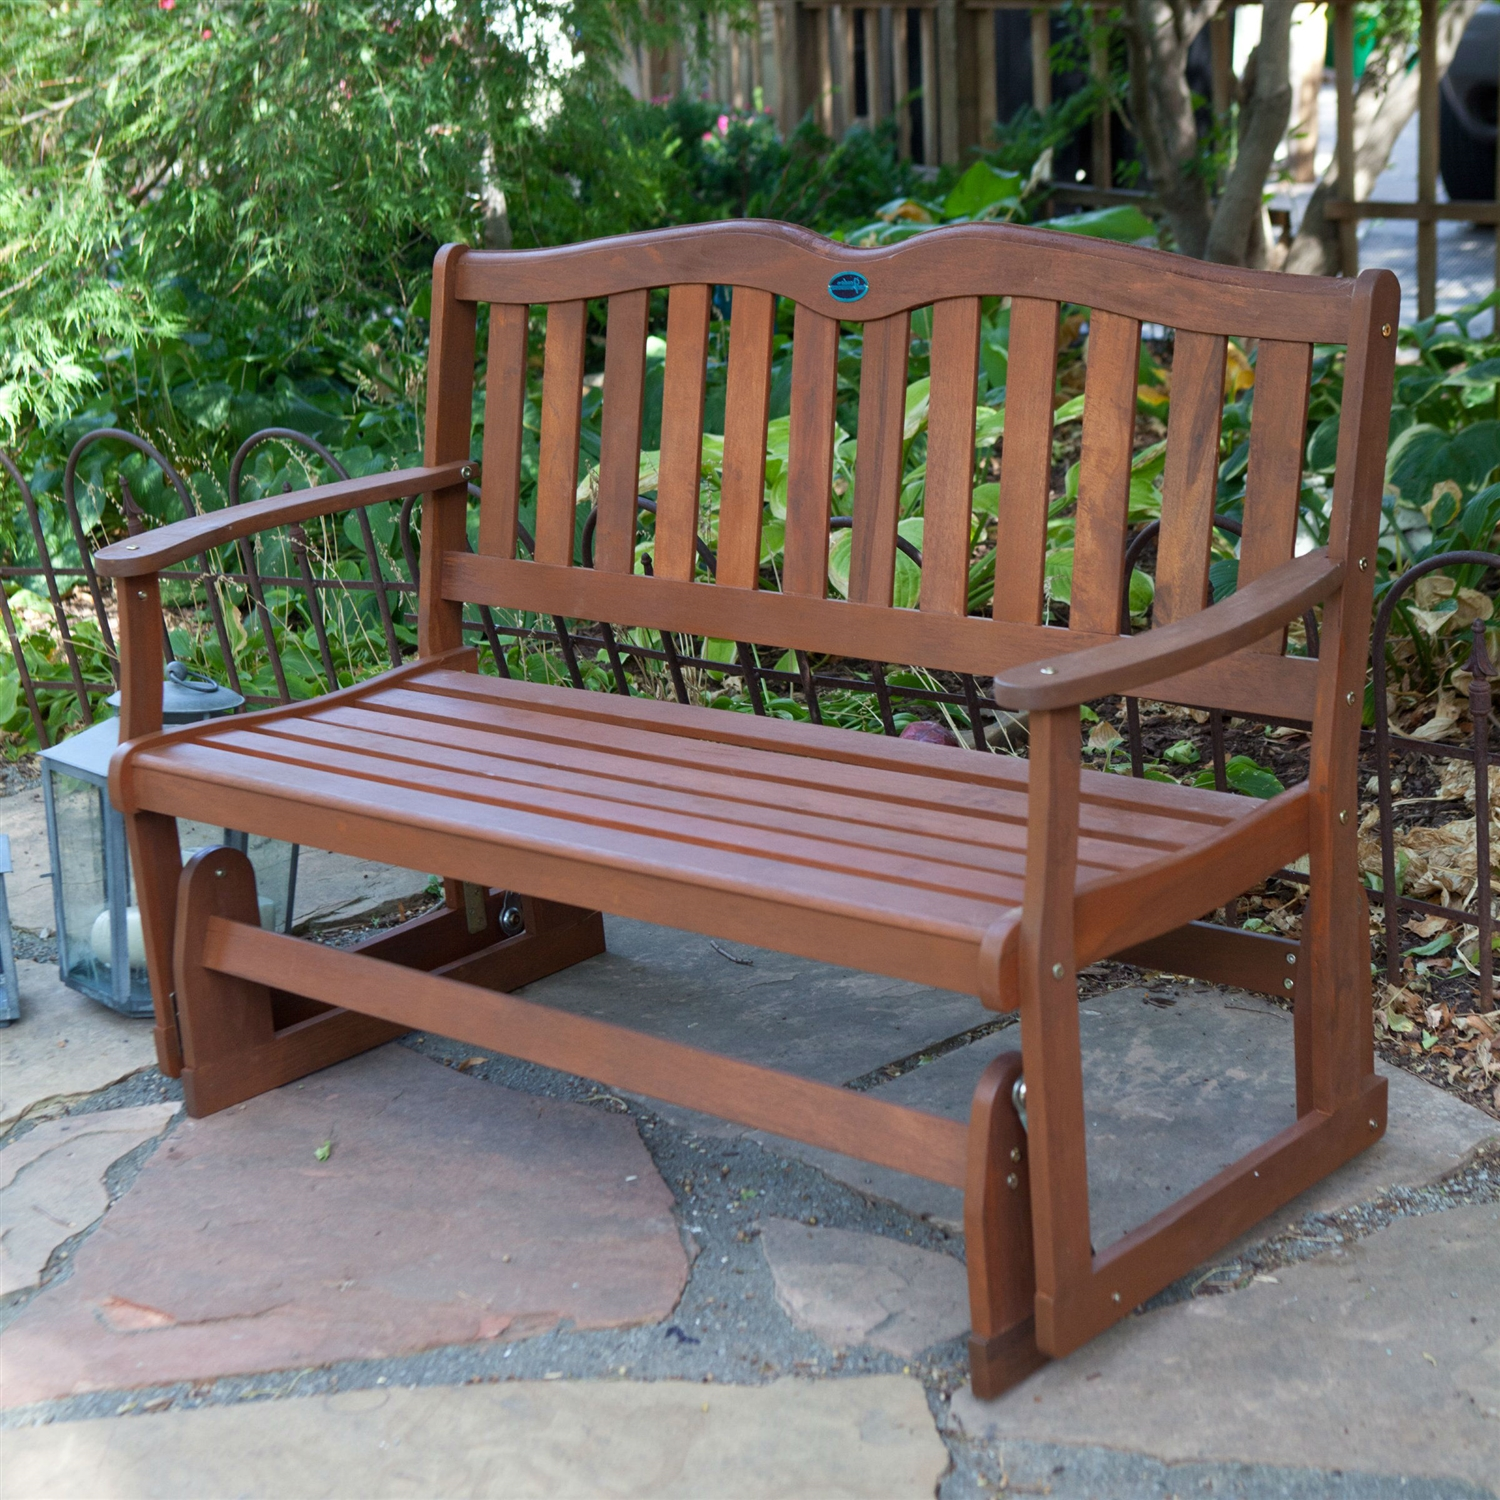 axondirect 4 ft outdoor patio garden love seat glider chair in natural eucalyptus wood